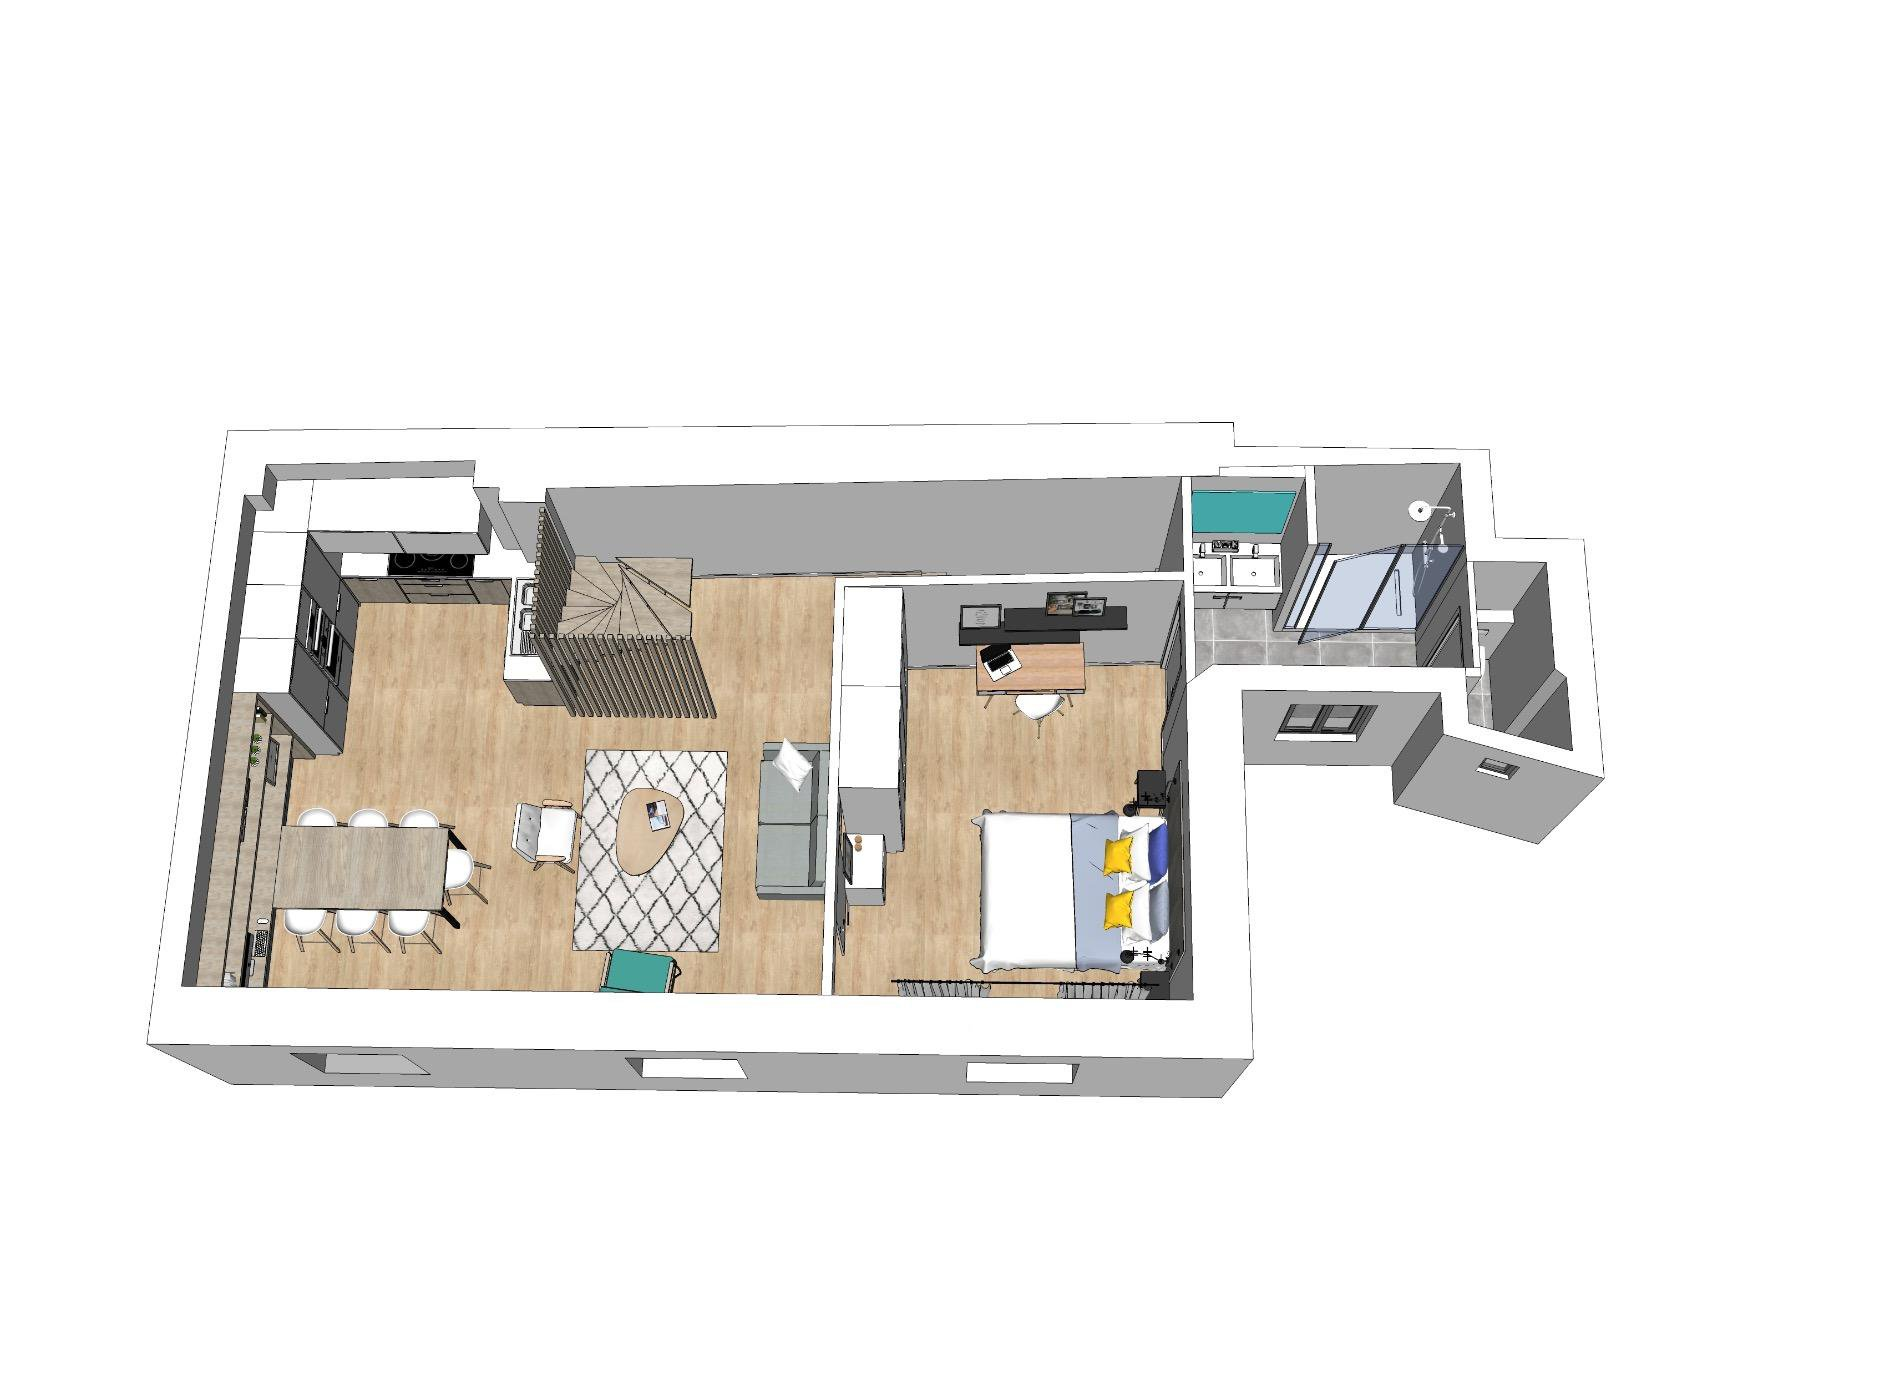 A671- Annecy Rue Royale, appartement de 122m2 habitables